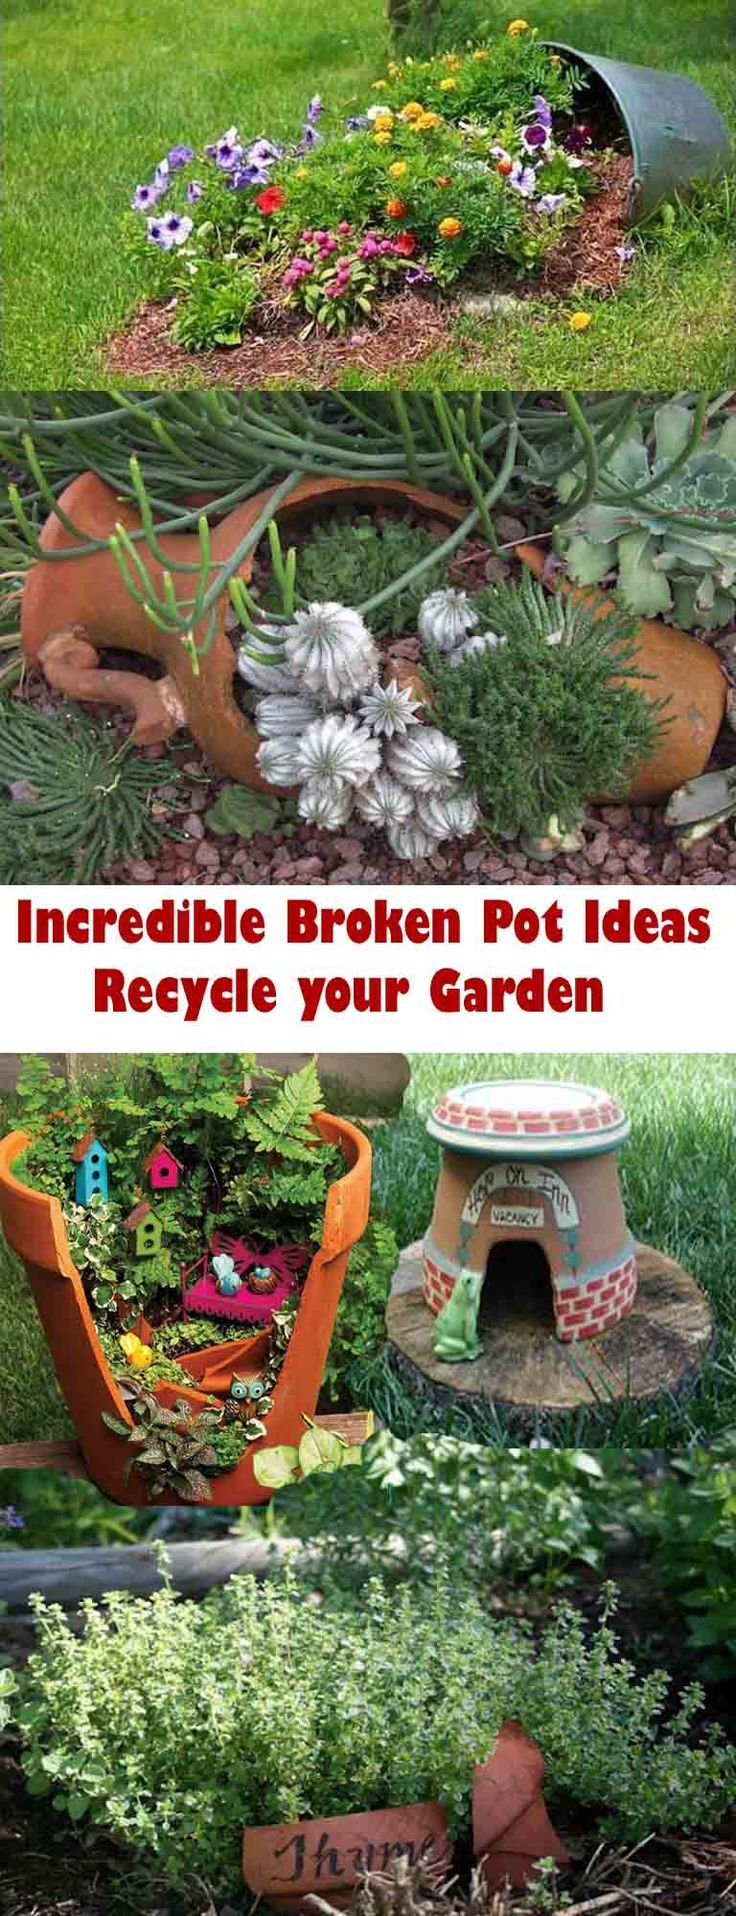 Do you have broken pots? Instead of throwing, recycle them. You've no idea that you can create amazing stuff for your garden from them easily. Check out!